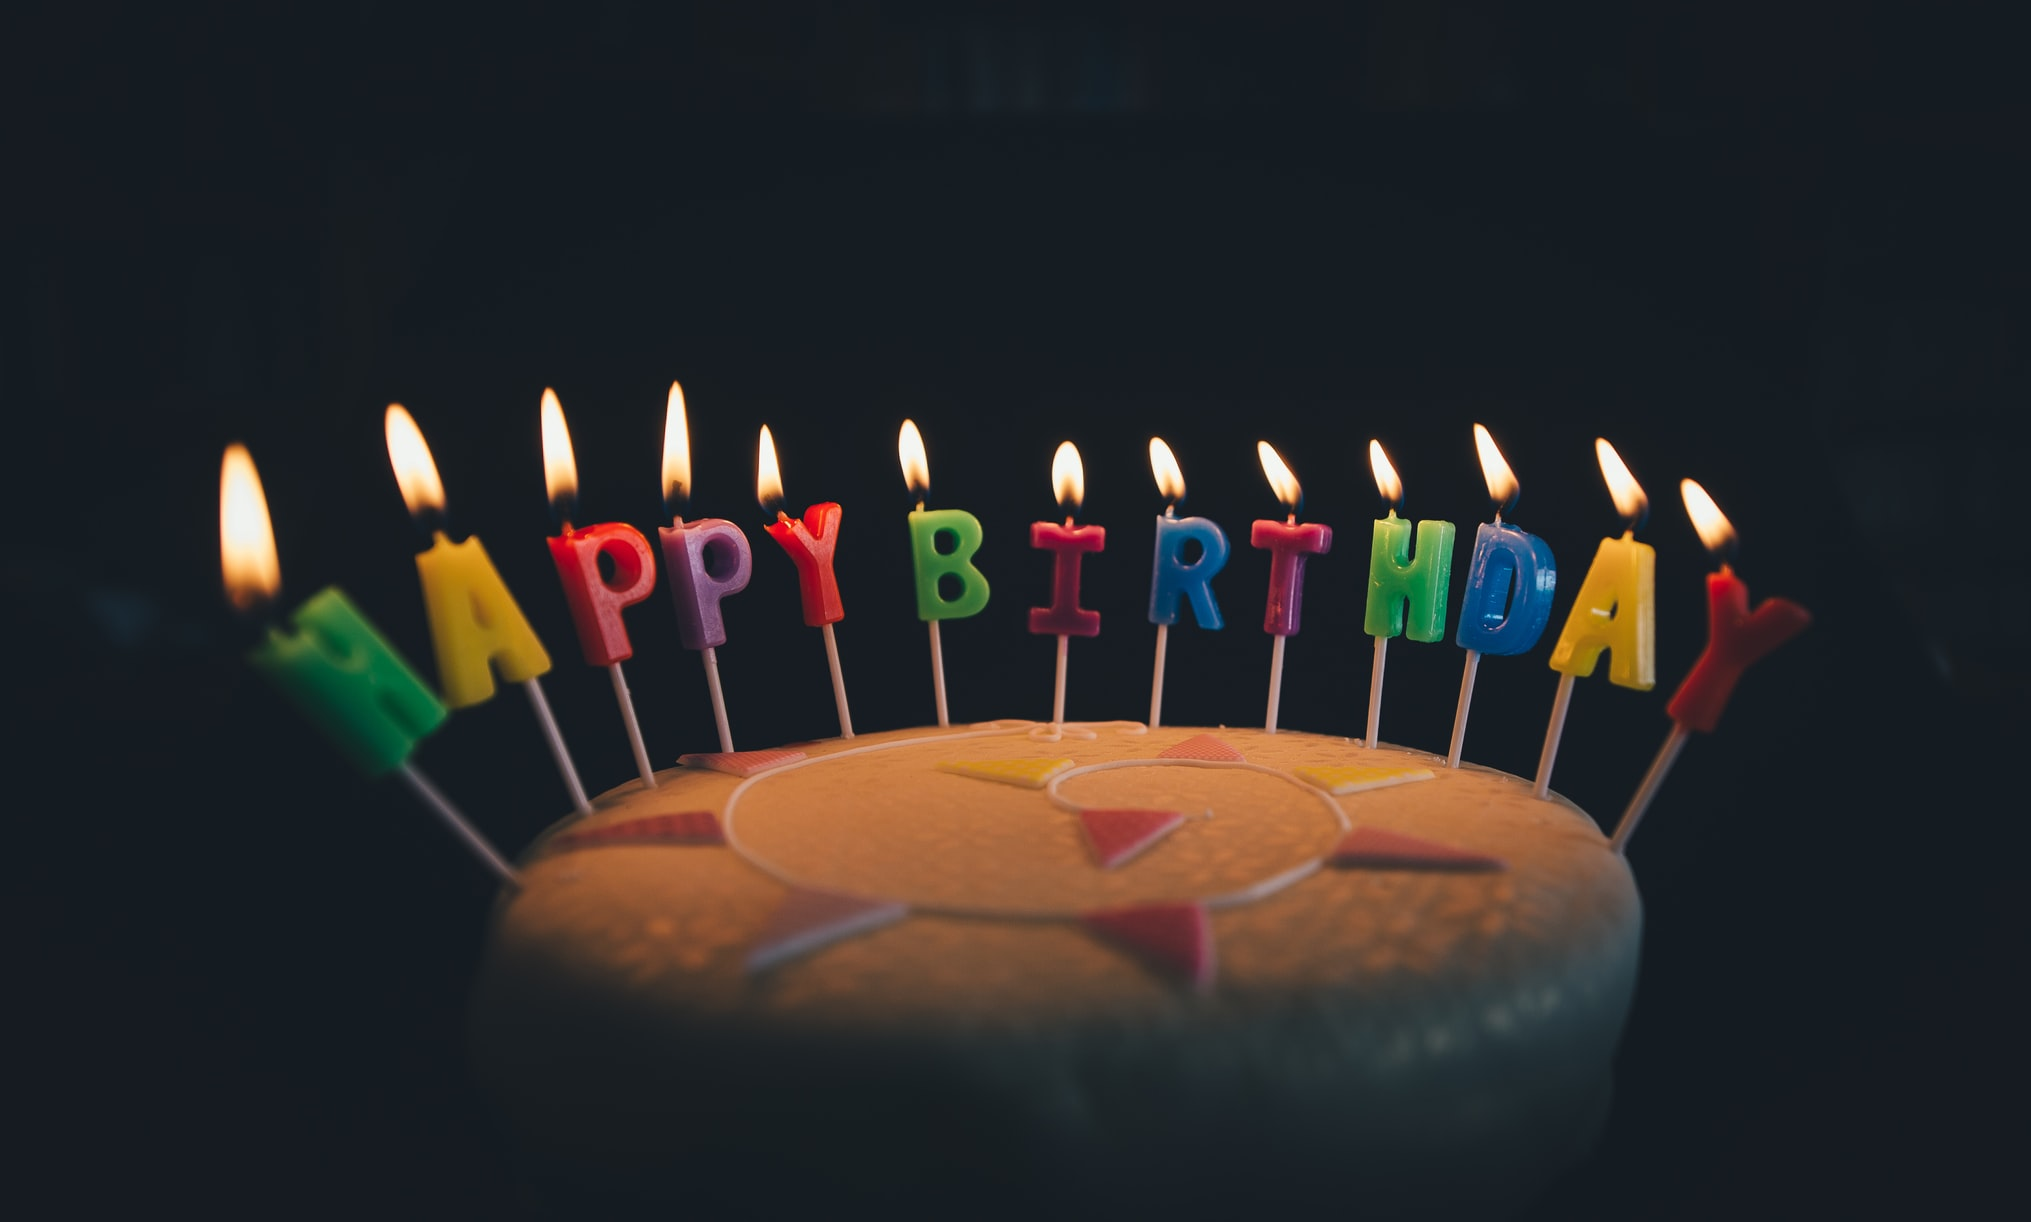 The least common birth date in the U.S. is May 22nd